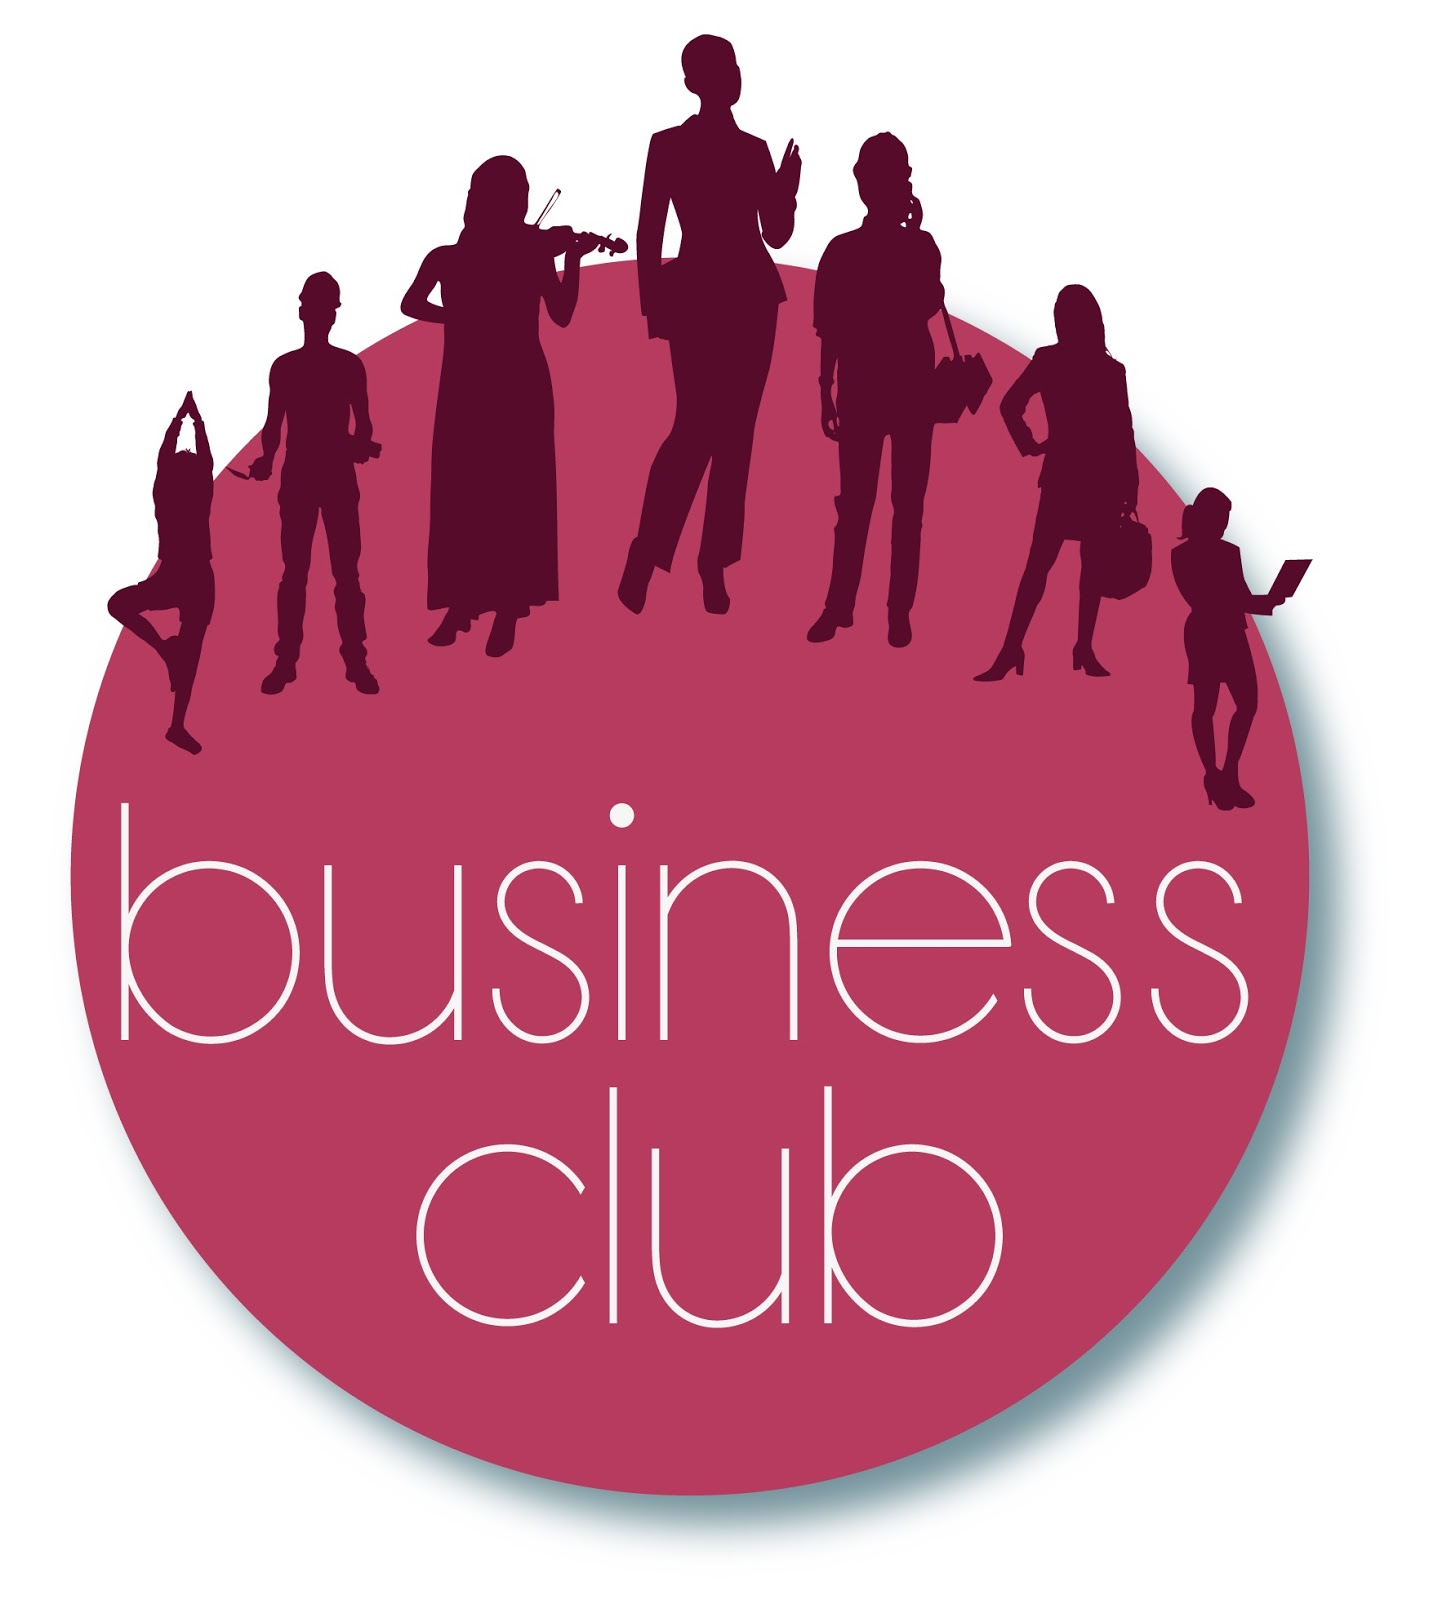 Business%2BClub%2BLogo.jpg